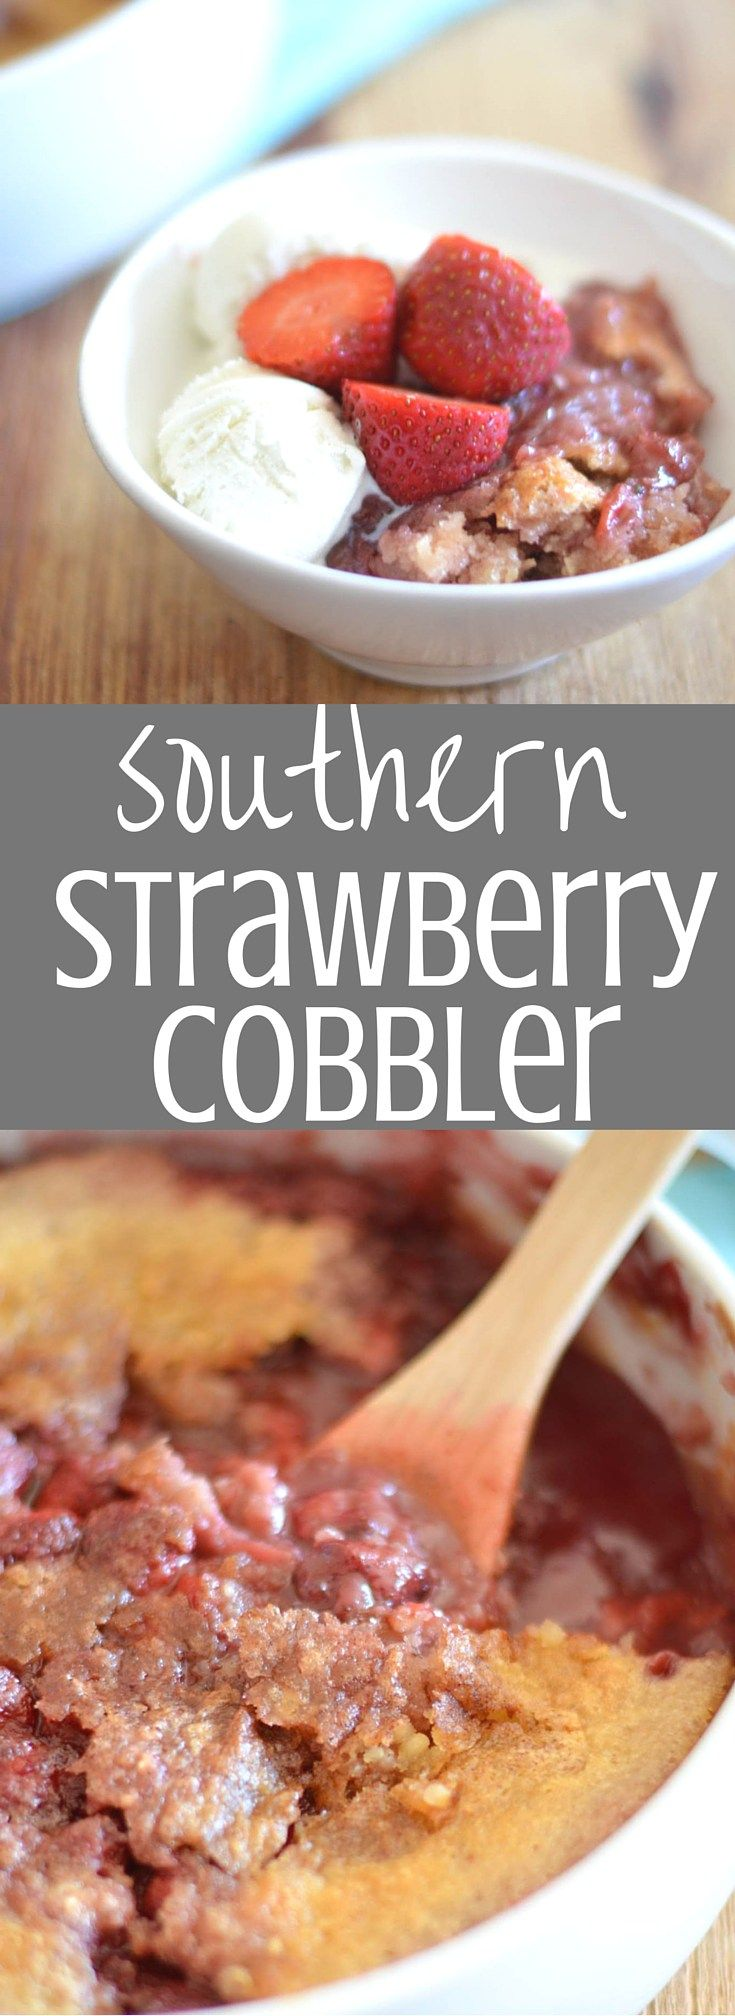 Strawberry Cobbler | This warm, sweet strawberry cobbler is a Southern classic - perfect with frozen strawberries and absolutely amazing with fresh spring strawberries. Clickthrough for the full recipe!